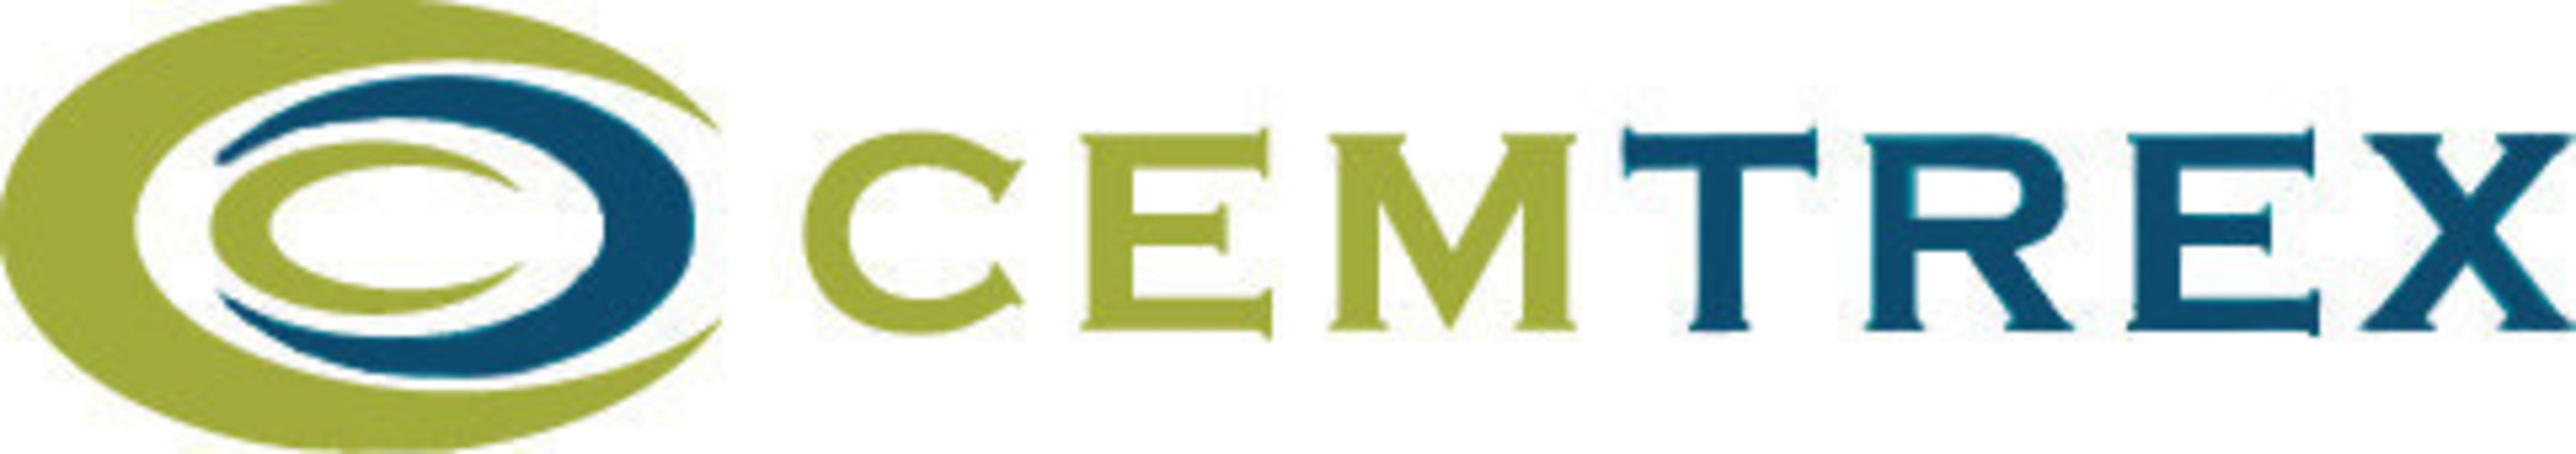 Cemtrex (OTC: CTEI) to Present at the 2015 Marcum Microcap Conference